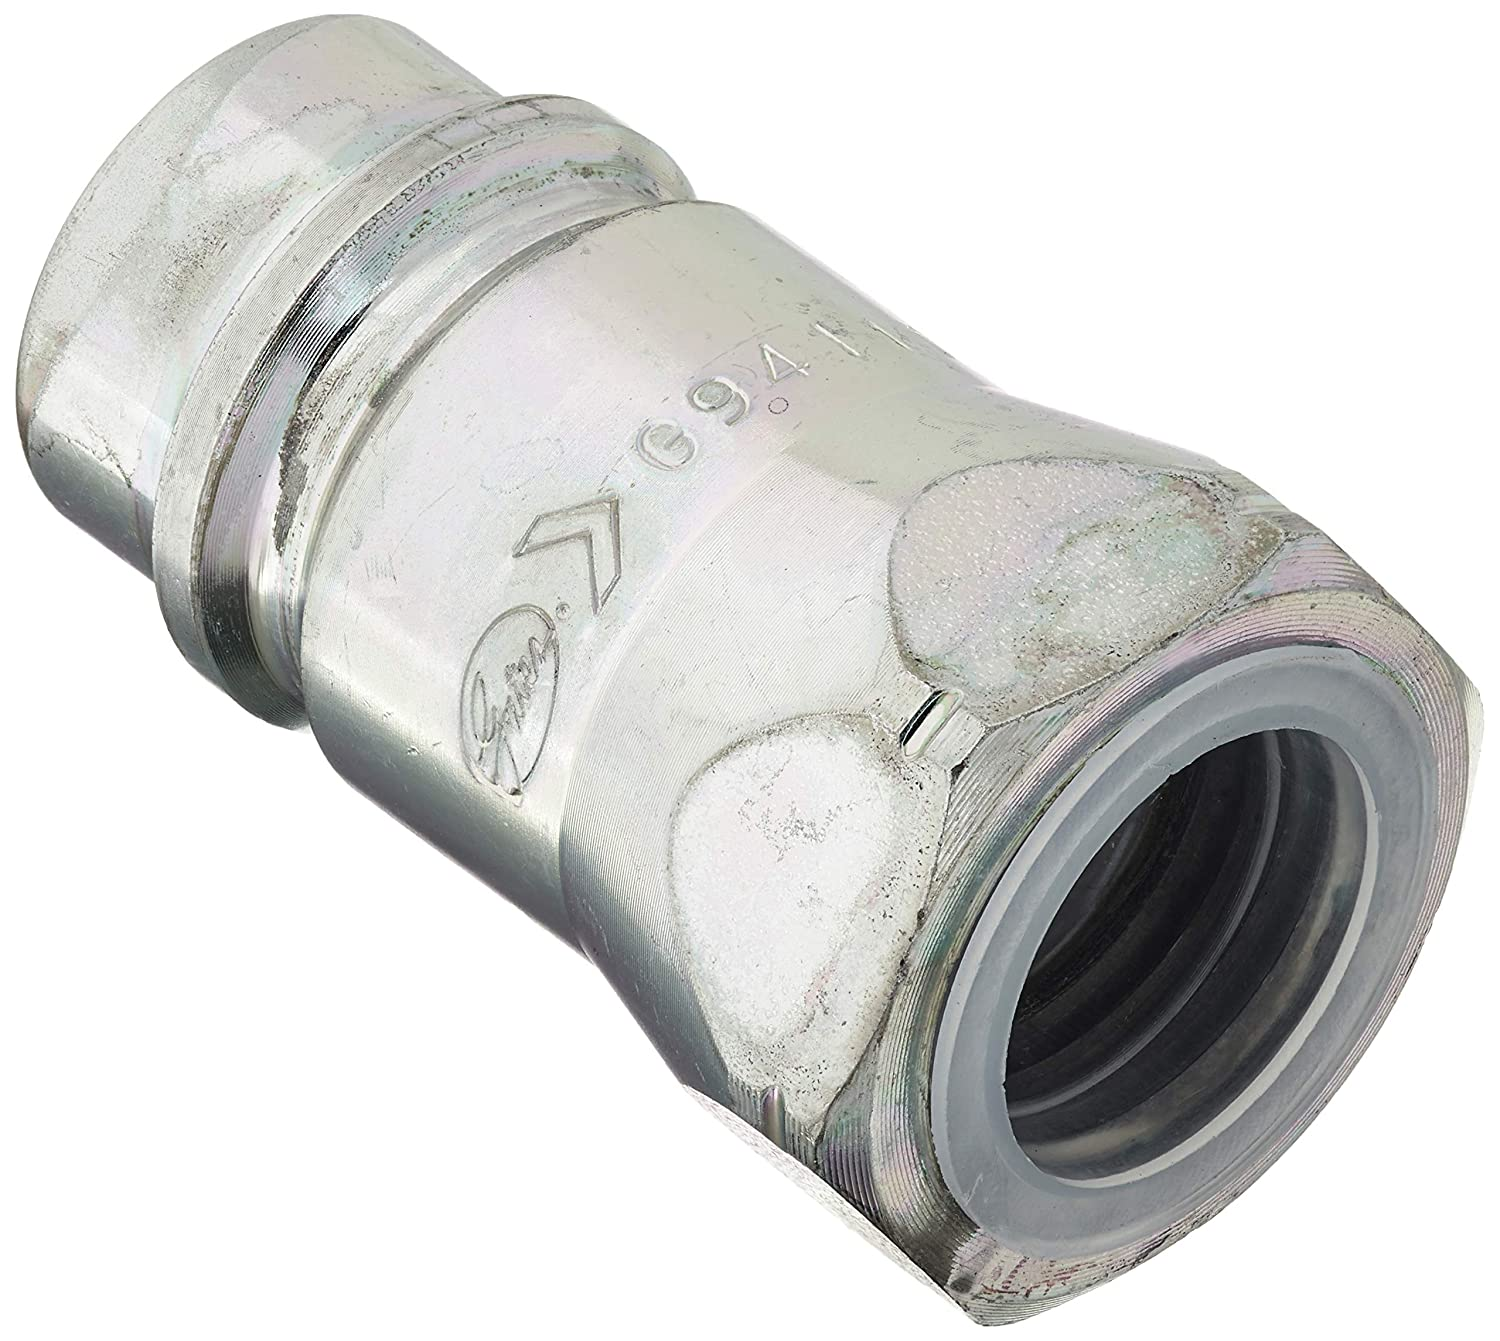 Gates G94111-0808 Quick Disconnect Coupling